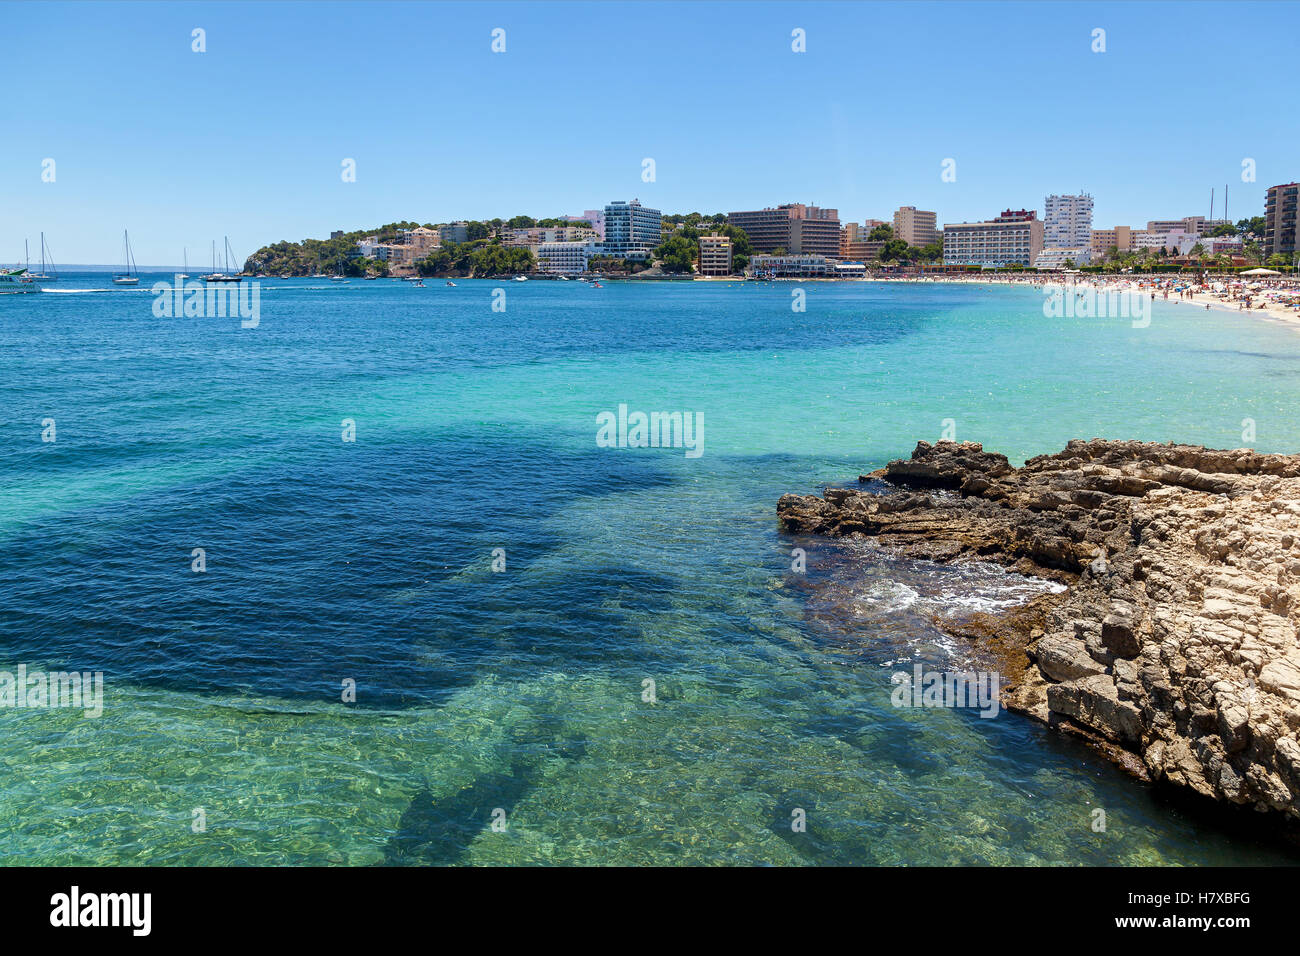 Rocky shore of Palmanova. Rocky shore of Palmanova on a sunny day. In the distance the crowded beach, as well as - Stock Image